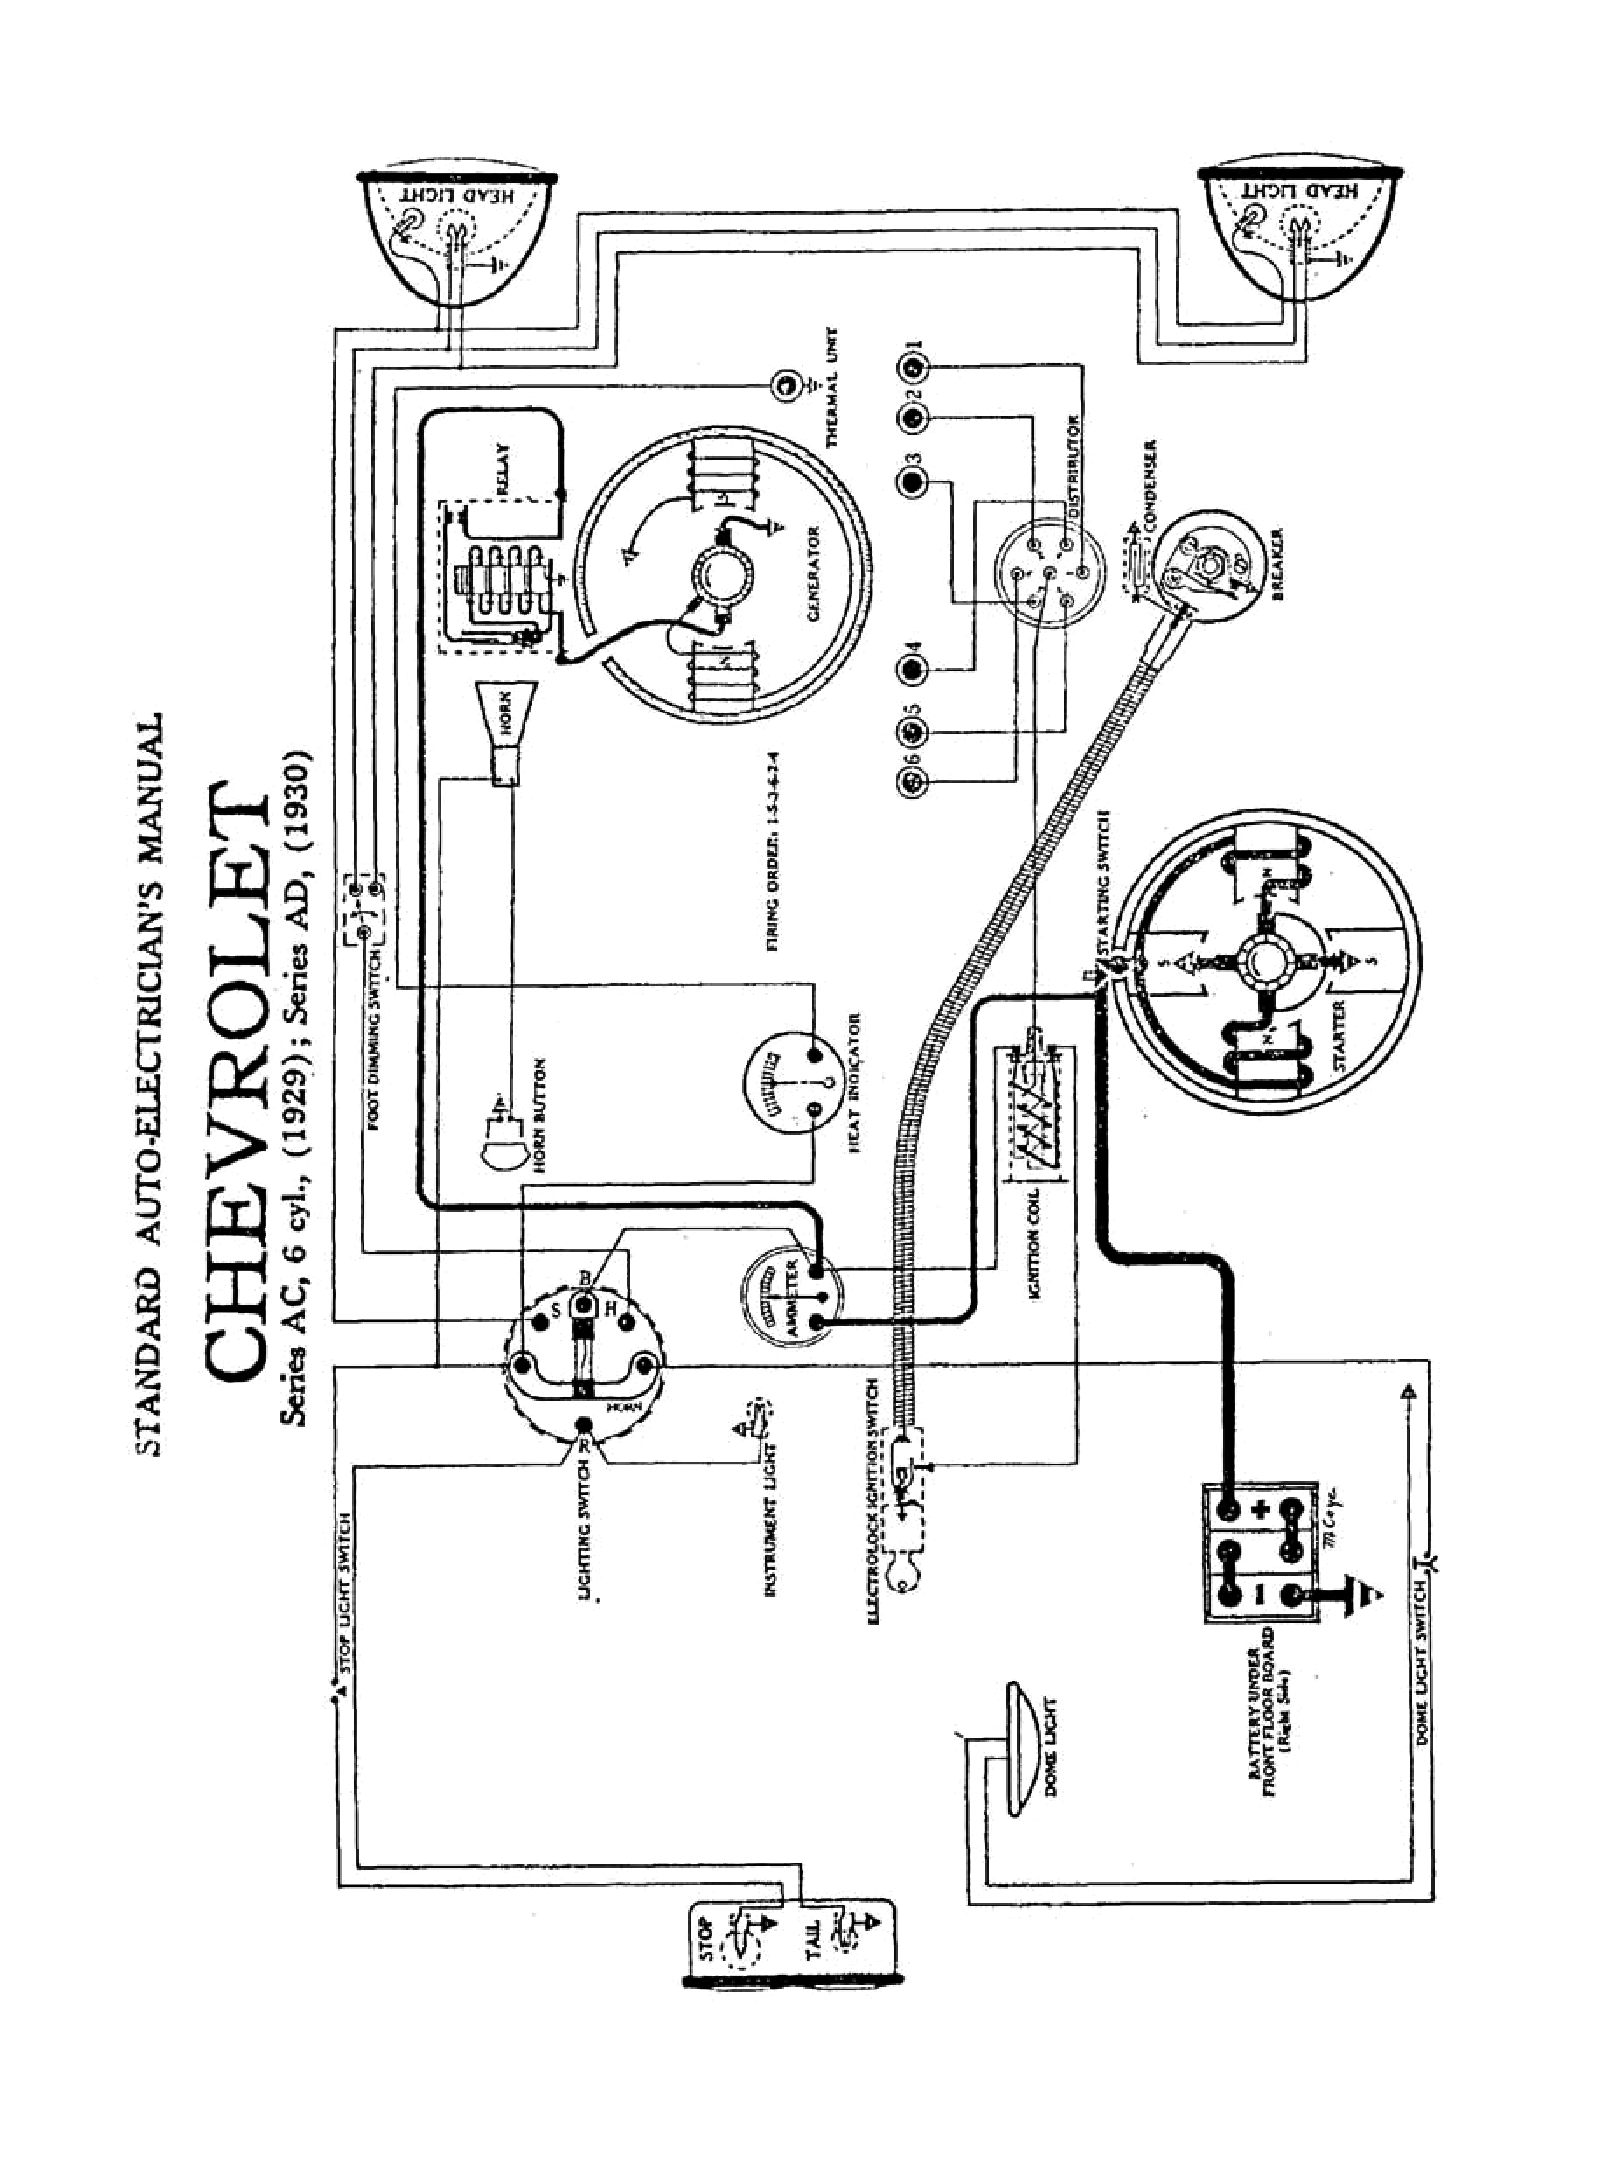 Two Cylinder Wiring Diagram Murray Guide And Troubleshooting Of Rider Harness Model Todays Rh 7 16 10 1813weddingbarn Com Mower 14 38 Toro Wheel Horse